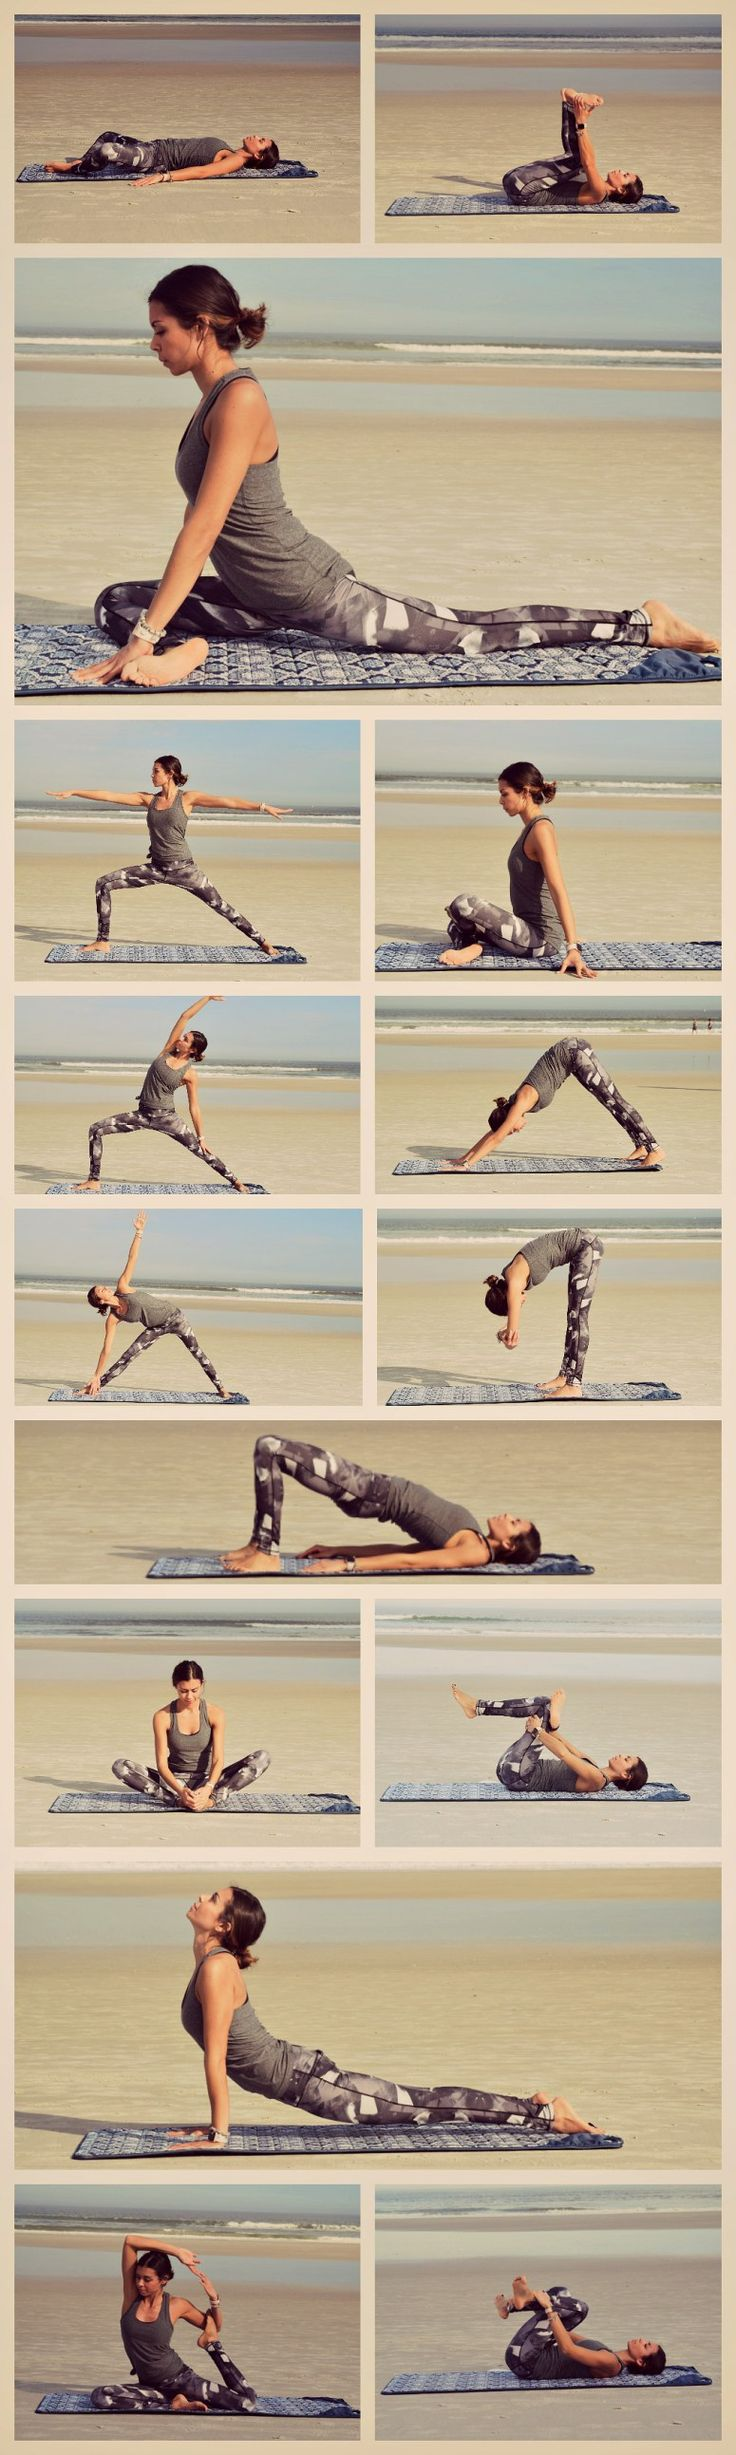 Repin to practice these poses later!  This Yoga Sequence helps to stretch out tight hip flexors & hamstrings.  This decreases muscle aches & pains, increases flexibility, and decreases risk for injuries.  This is especially useful for runners and other athletes. | Yoga, Stretching, Health & Fitness Inspiration